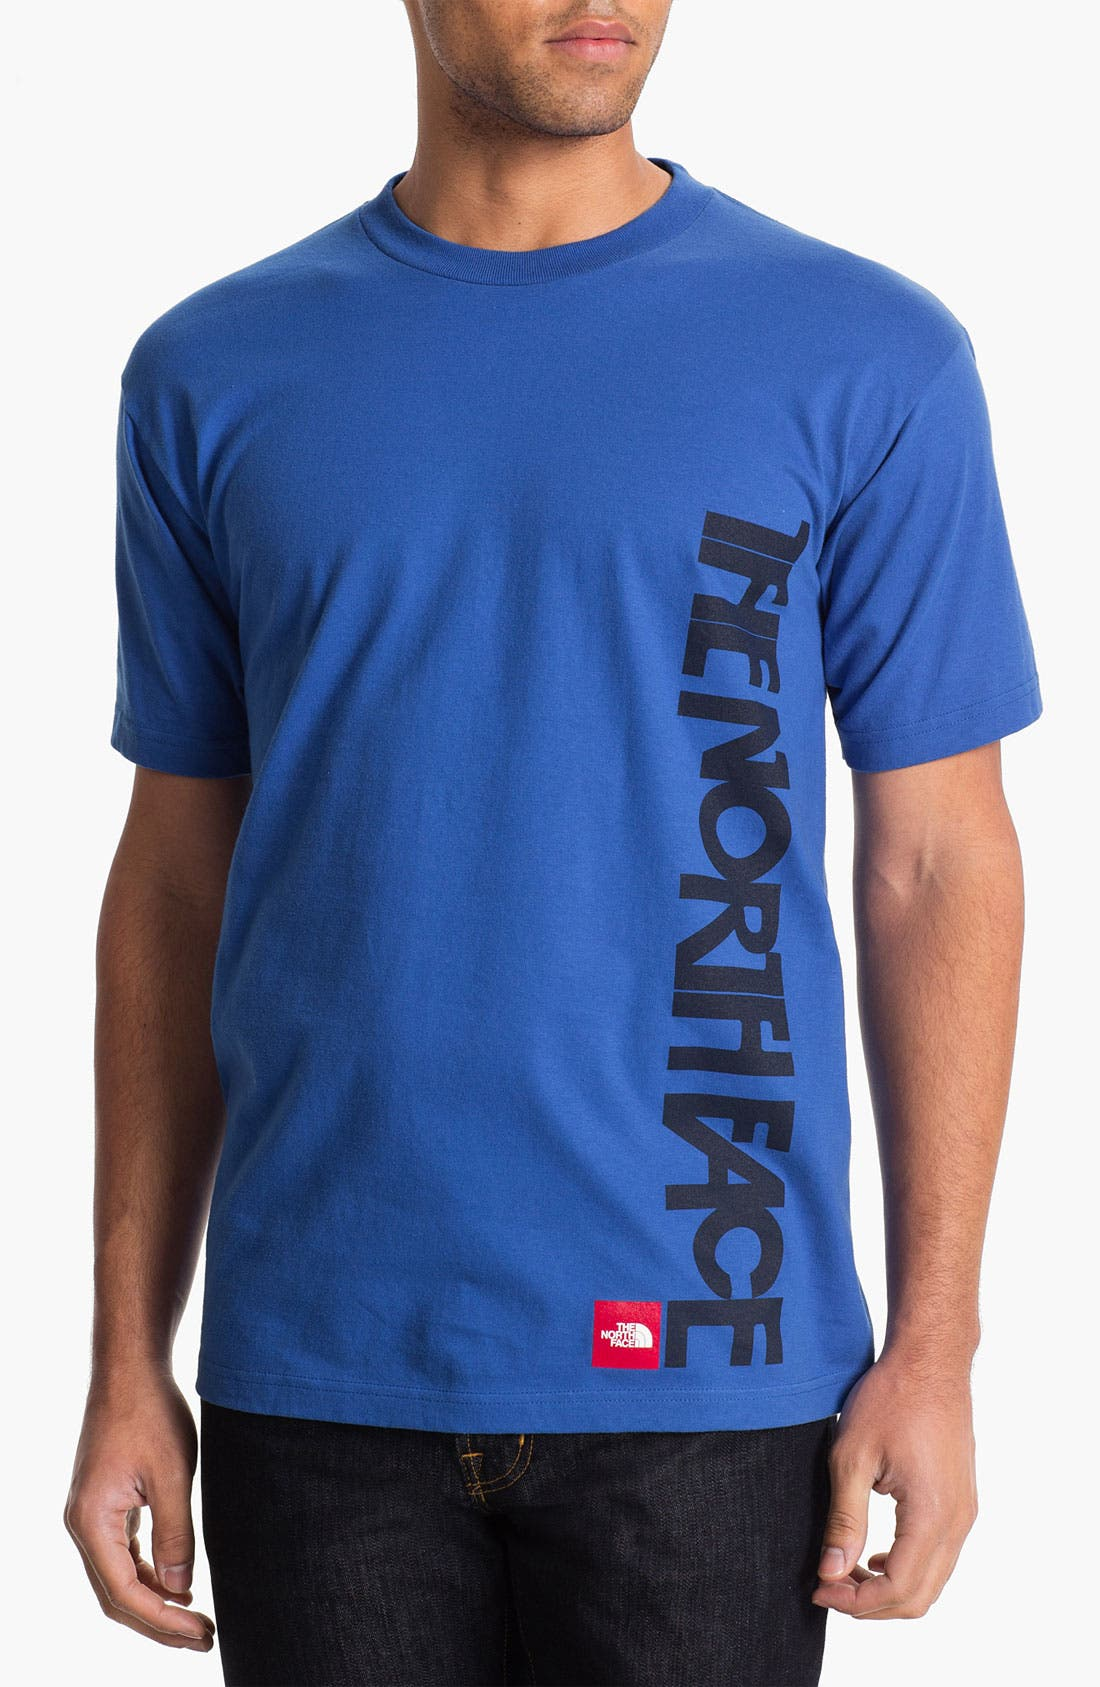 Alternate Image 1 Selected - The North Face 'Oseela' T-Shirt